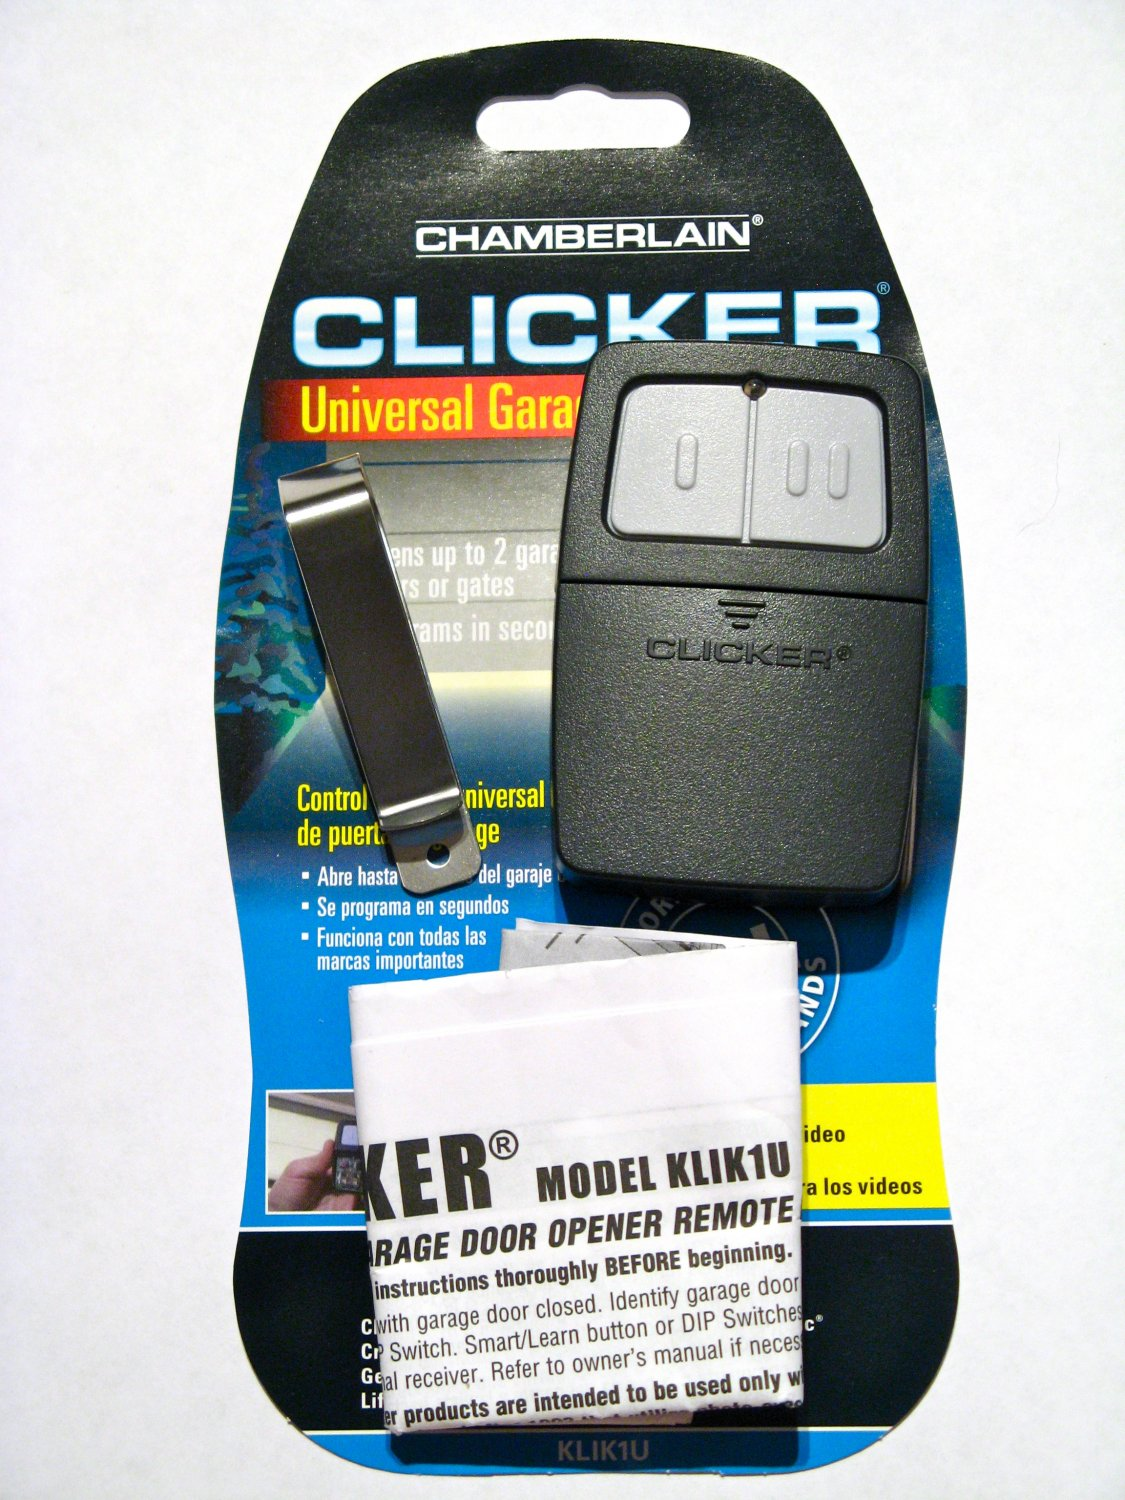 Chamberlain clicker remote klik1u garage door opener Www clickerproducts com